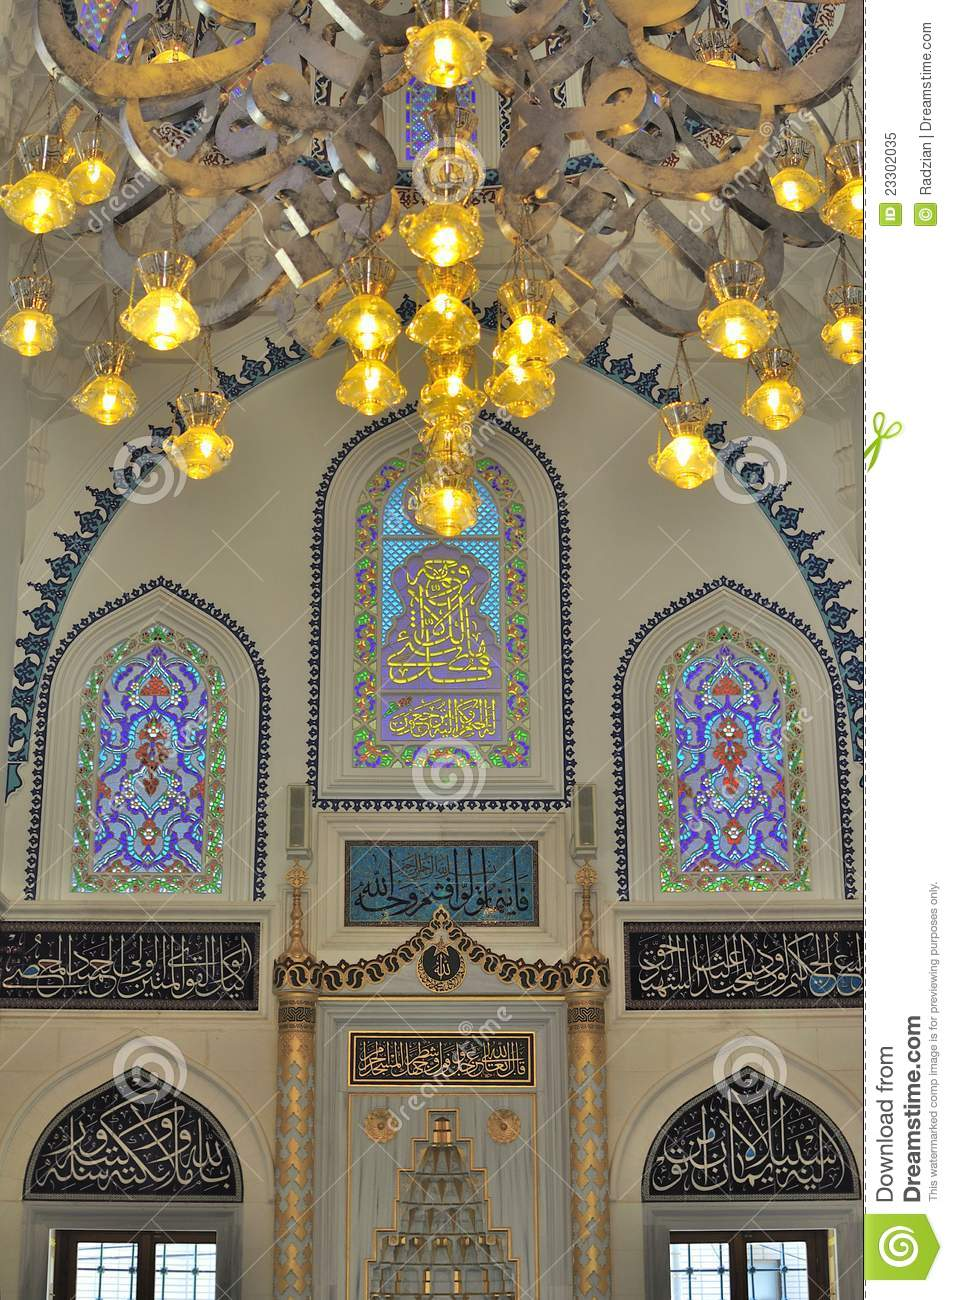 The Picture Shows The Colourful Interior Design Of A Turkish Mosque Which  Was Constructed In Tokyo Japan After The Turkish Community Fled Russia.